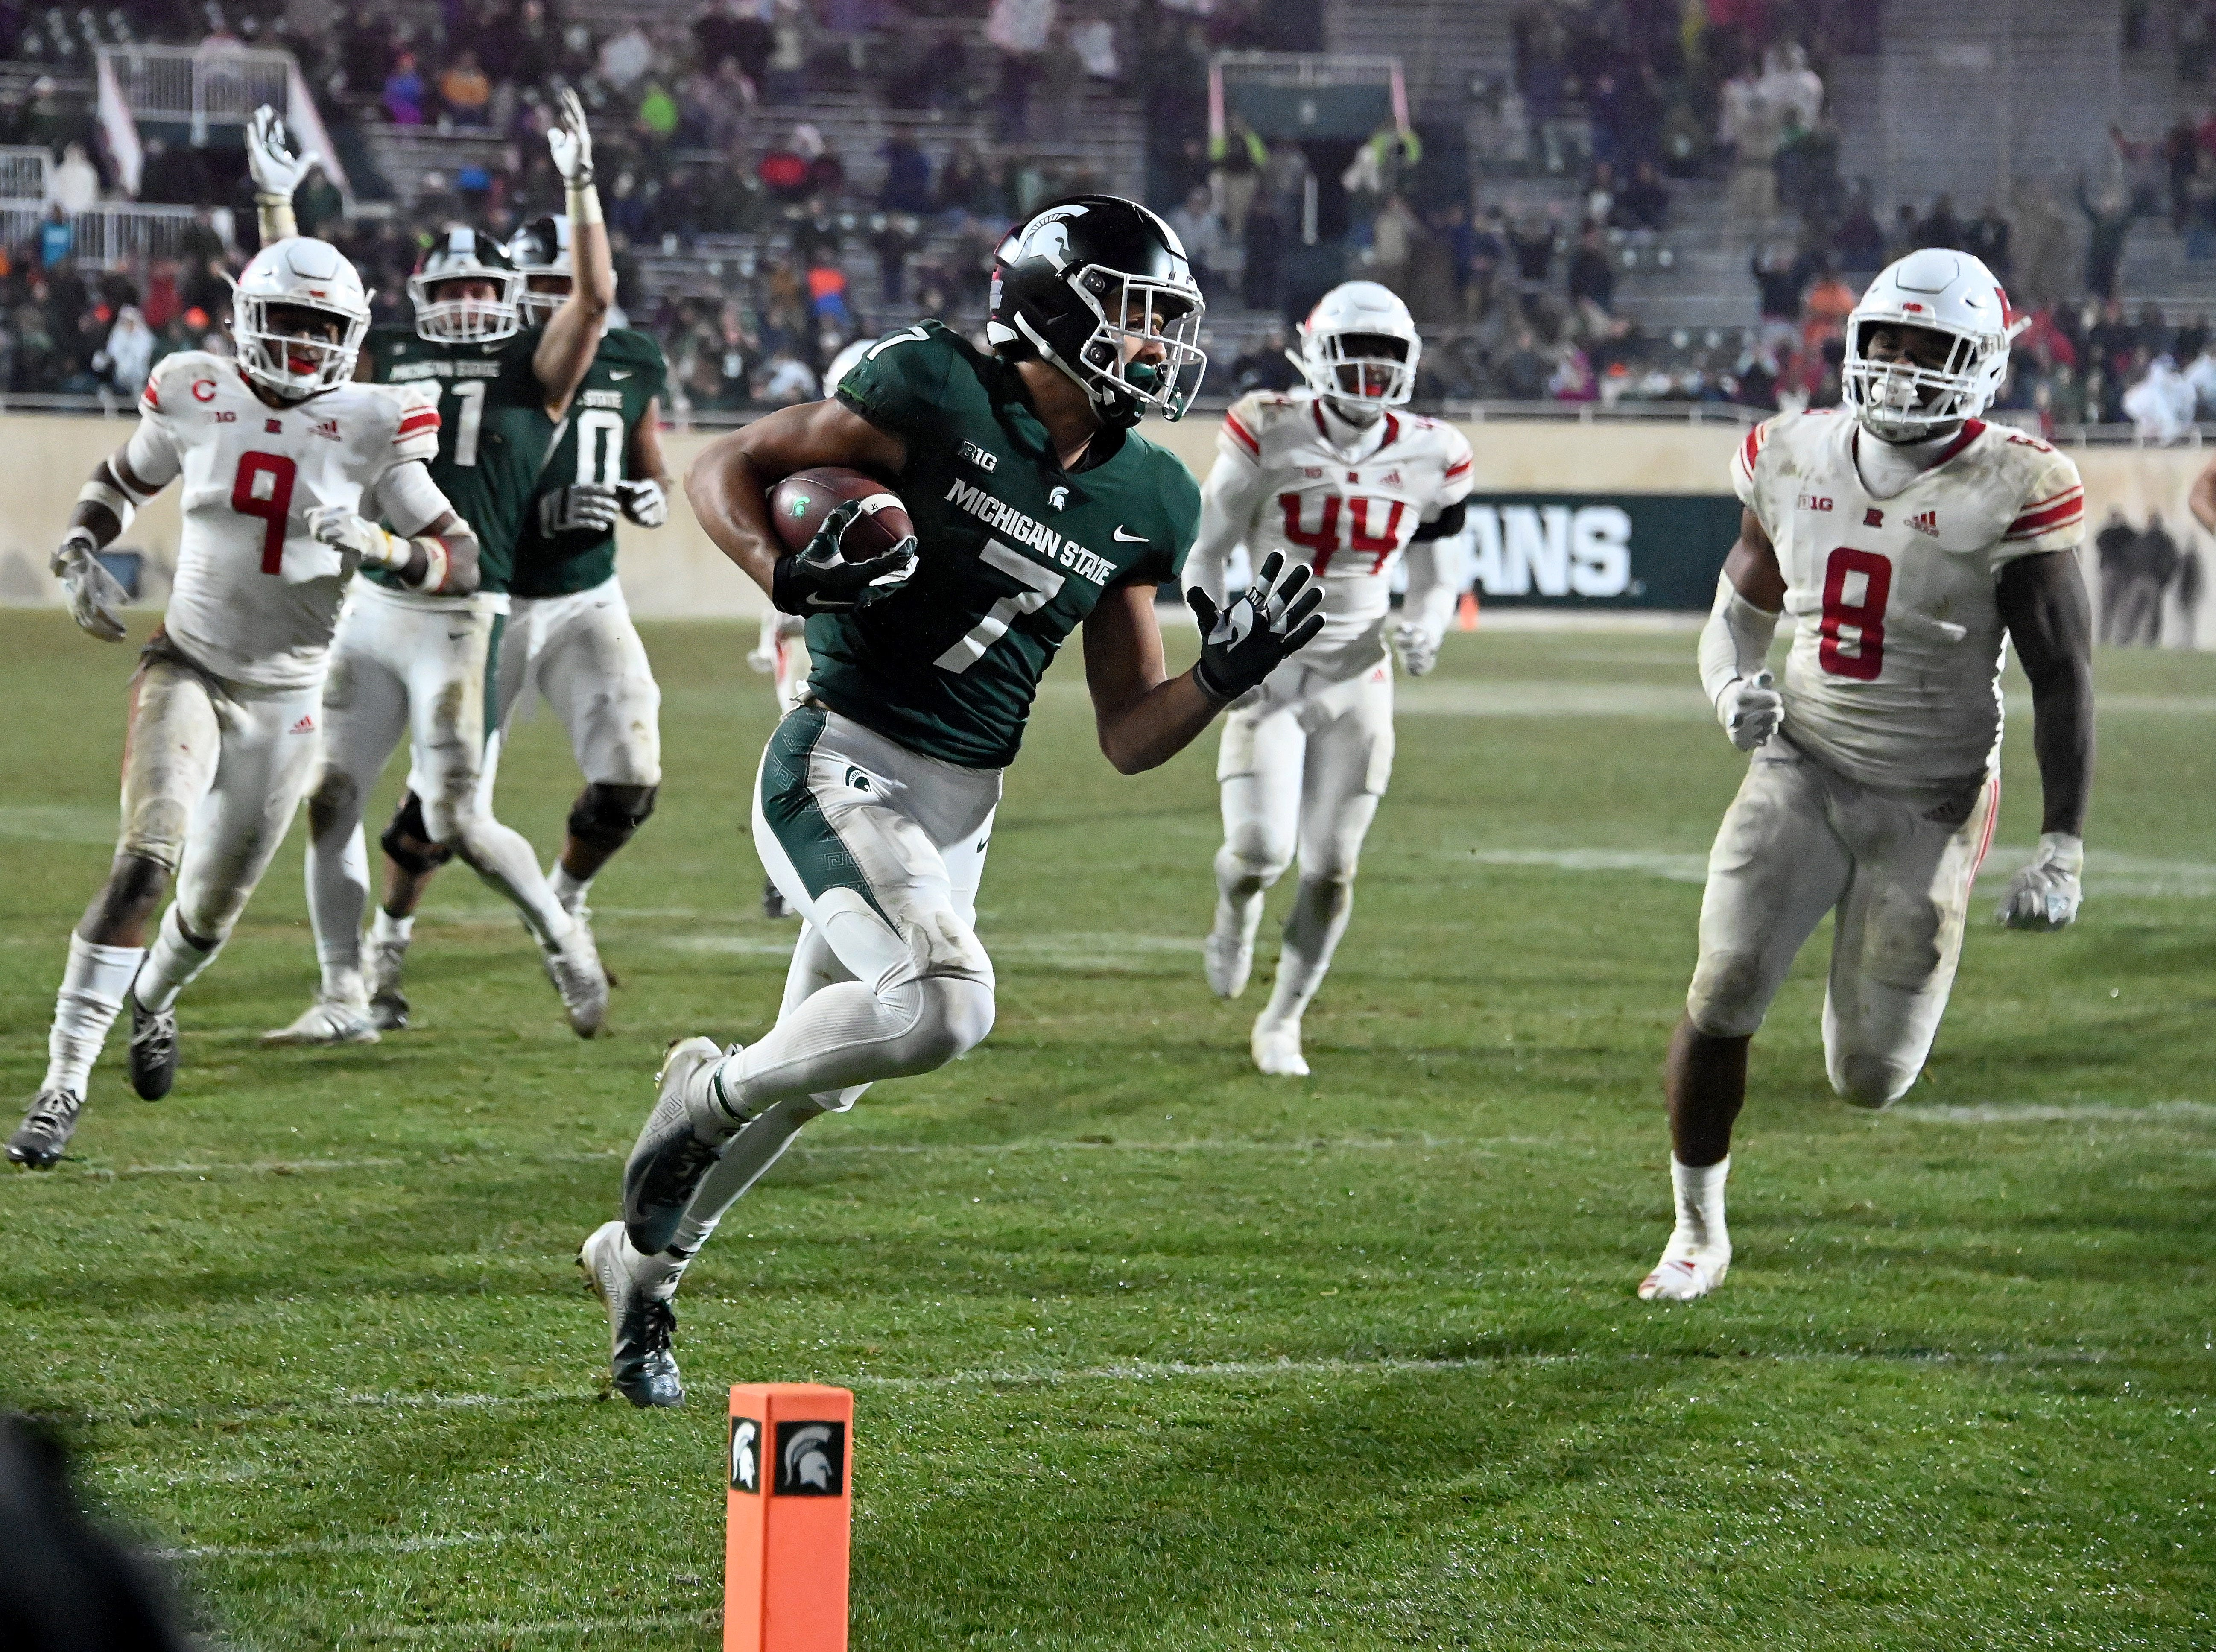 6. Michigan State (7-5, 5-4) – It was the same old story in the final regular-season game for the Spartans as the defense was outstanding and the offense hardly had a pulse. However, it was Rutgers on the other side of the ball and MSU managed to find the end zone twice, the second touchdown coming with 3:57 to play to help avoid and ugly loss that would have capped a frustrating season. Last week: 7.